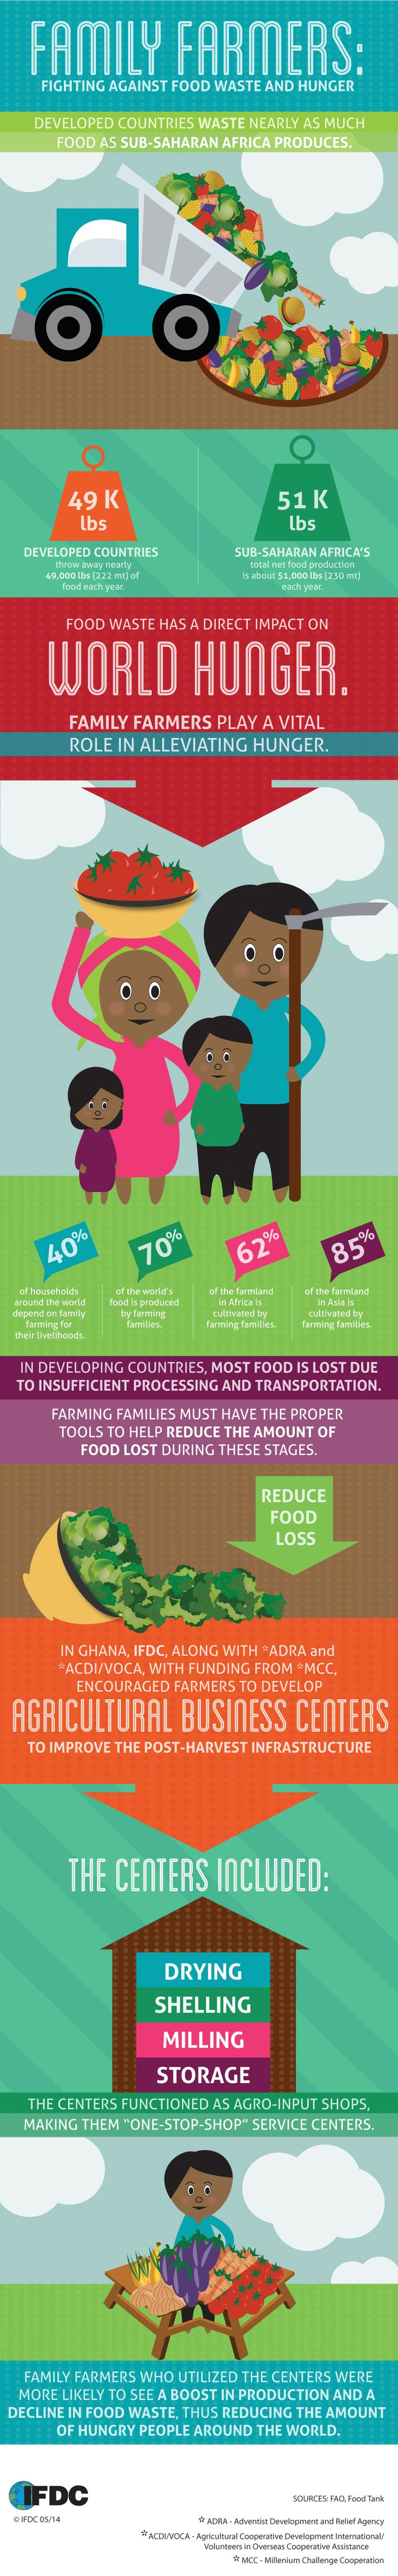 2014 is the International Year of Family Farming - see why it's important.